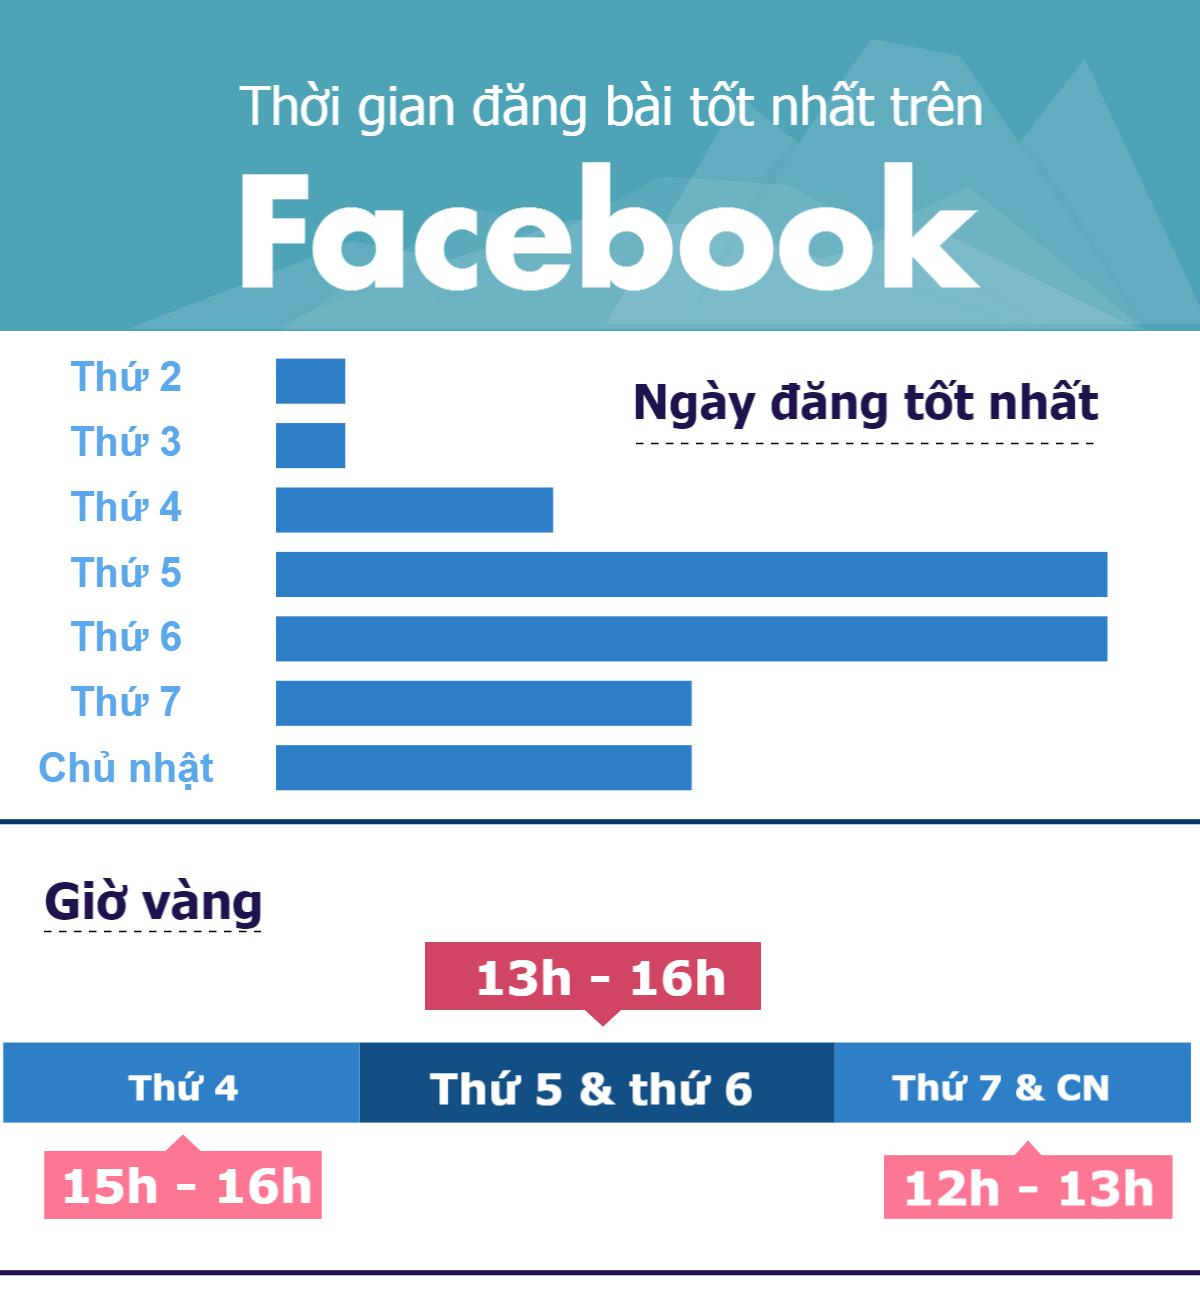 [infographic] tiet lo gio vang cau like facebook hinh anh 1